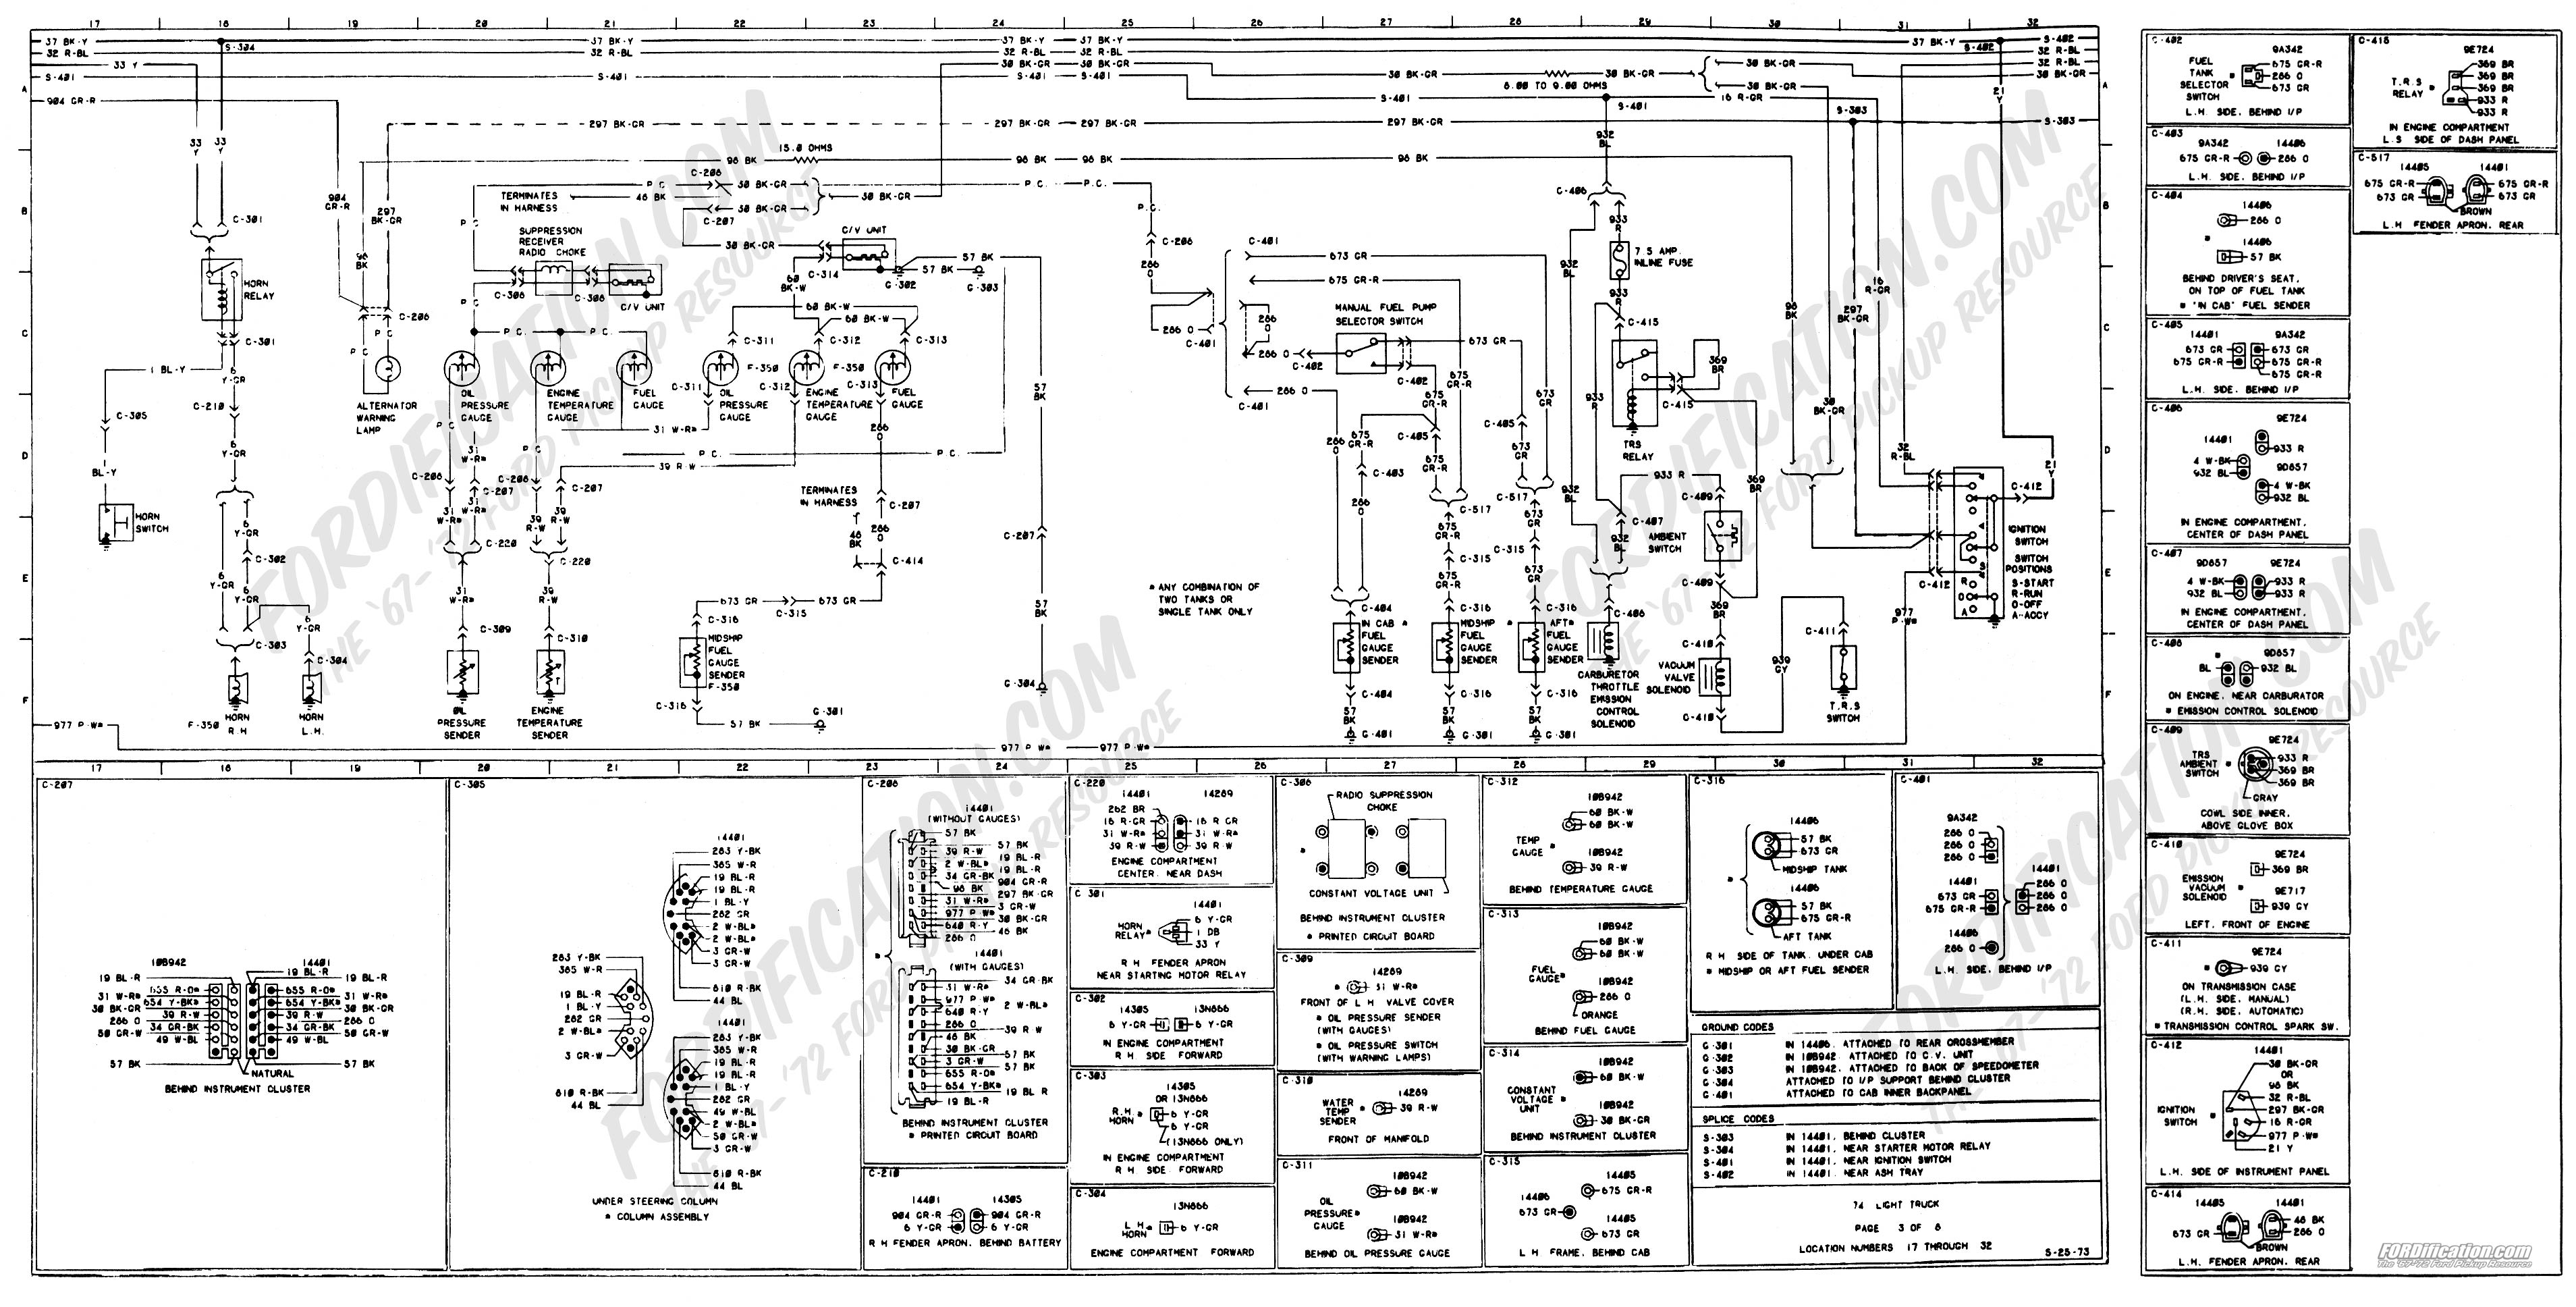 wiring_74master_3of8 www fordification net tech images wiring wiring_74 ford transit wiring diagram download at suagrazia.org